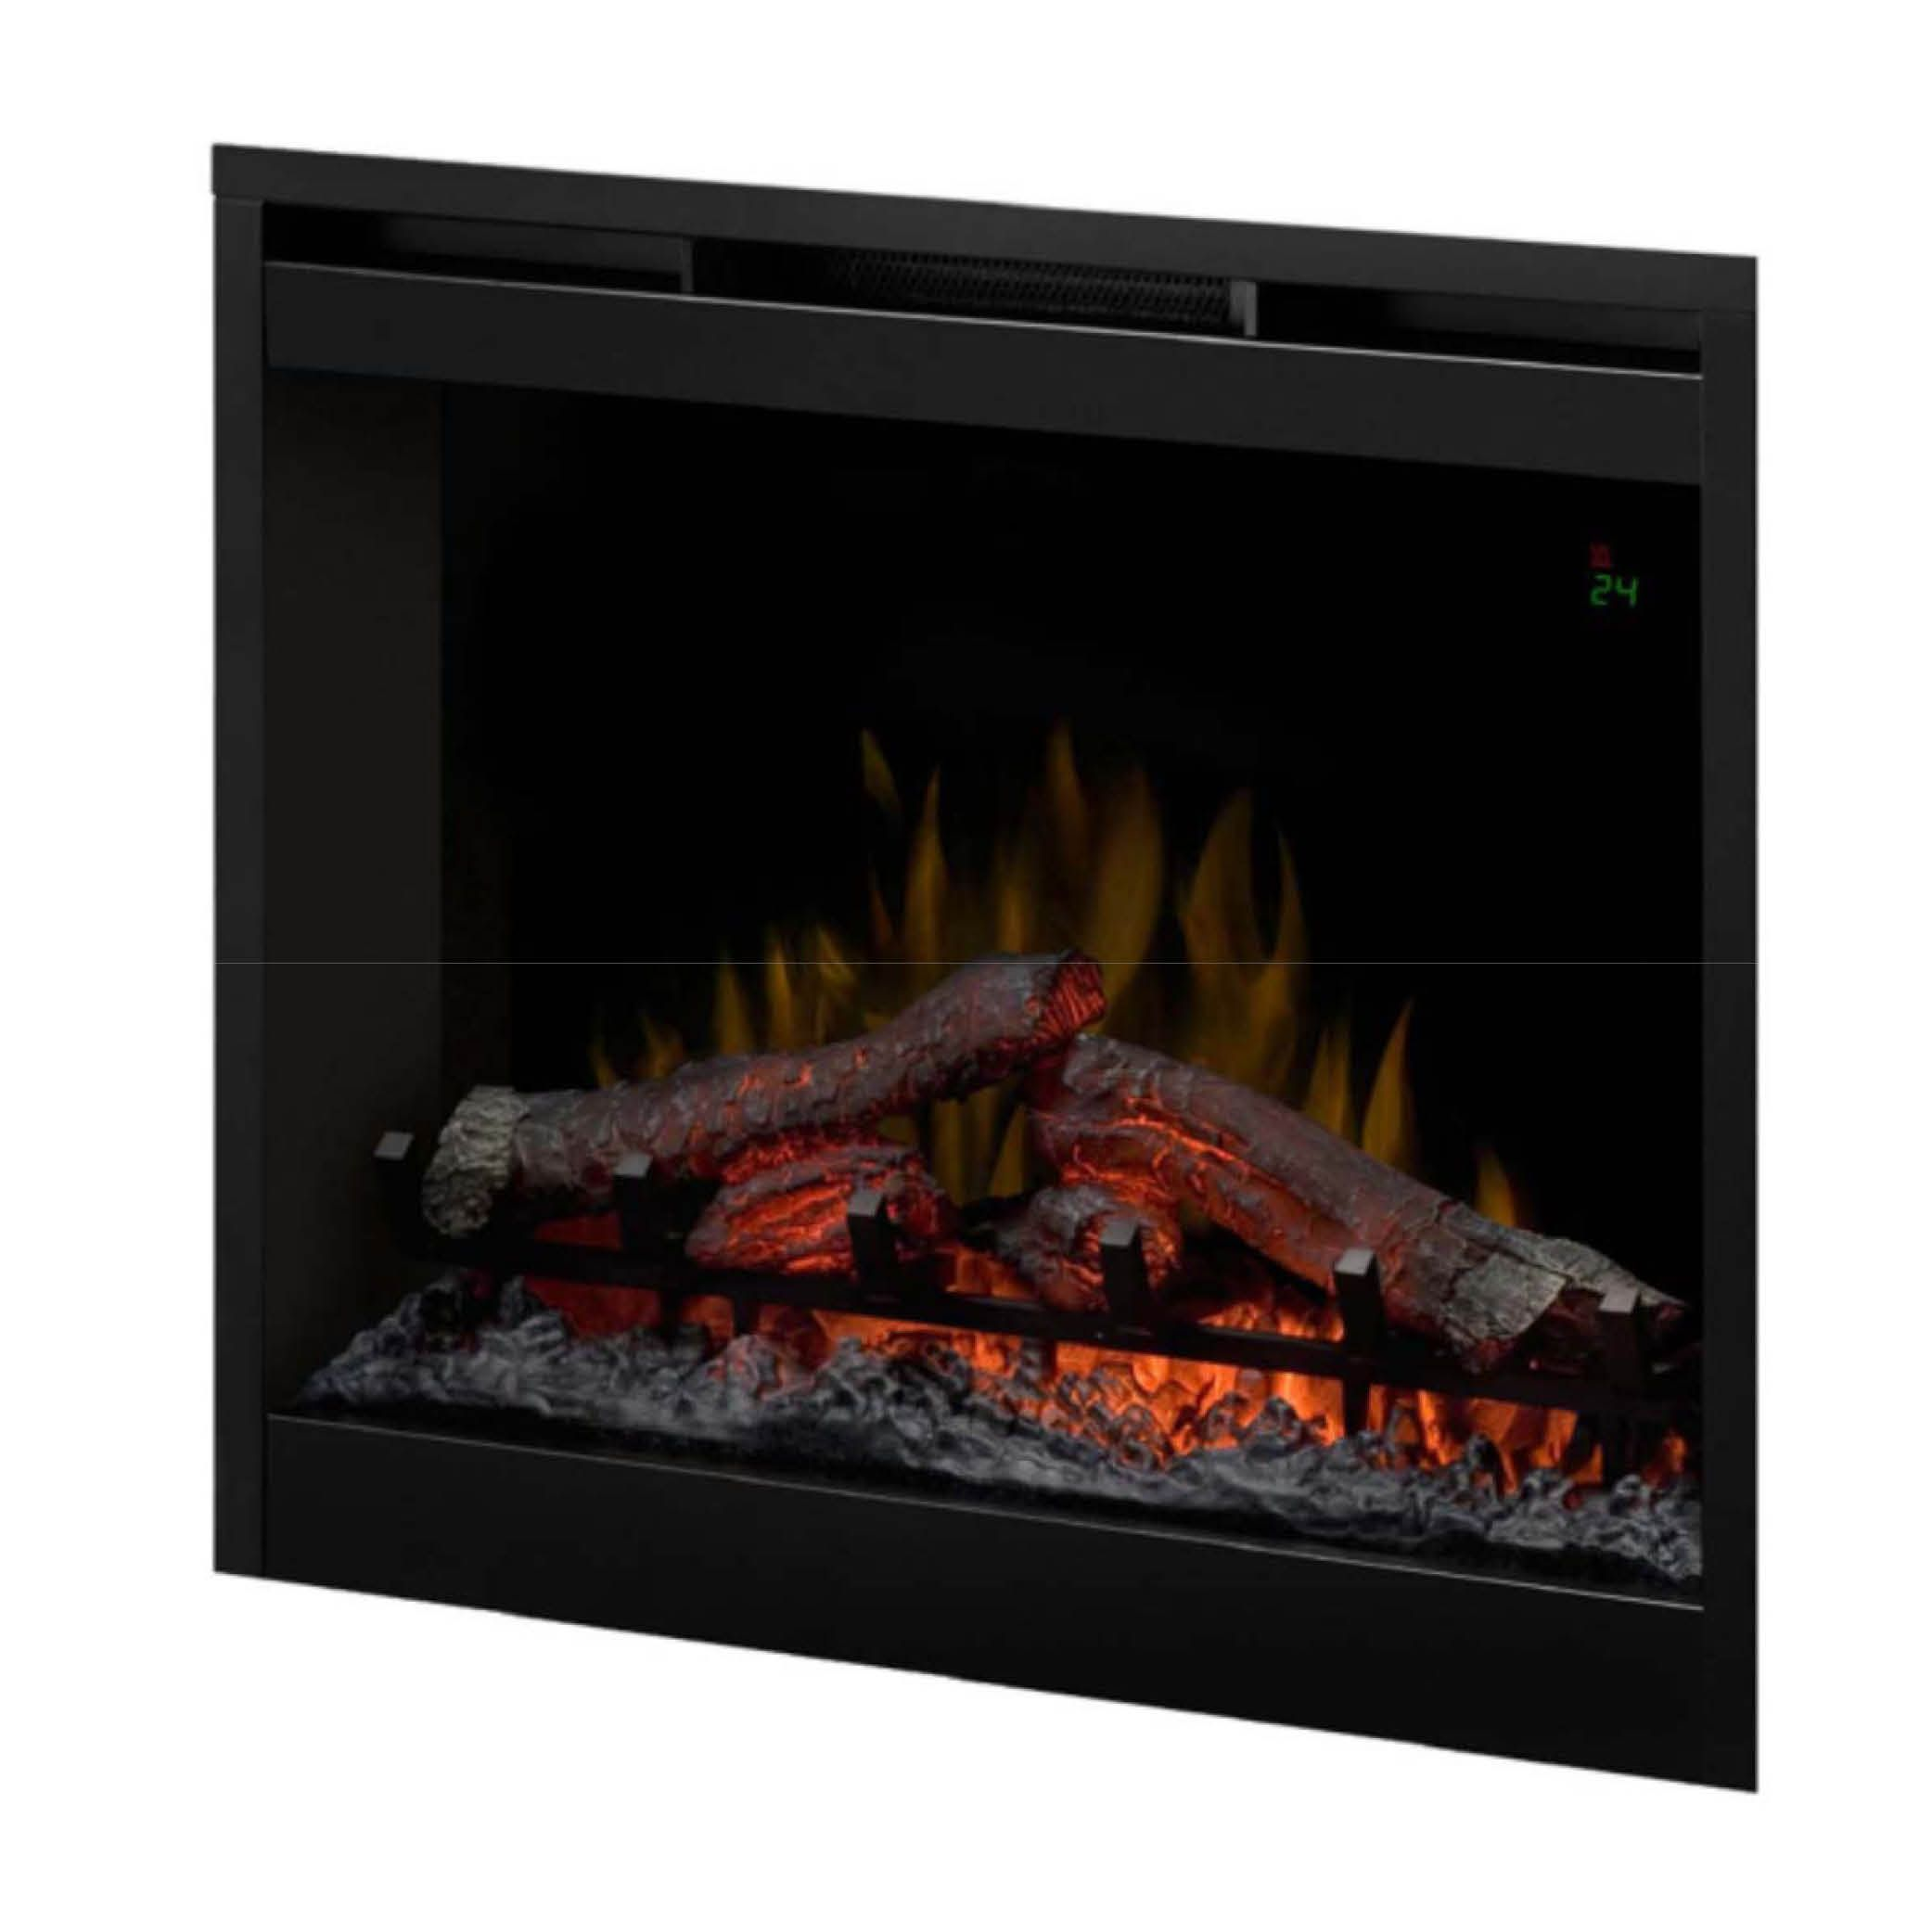 our 26 inch firebox is but one of the available plug in fireplaces